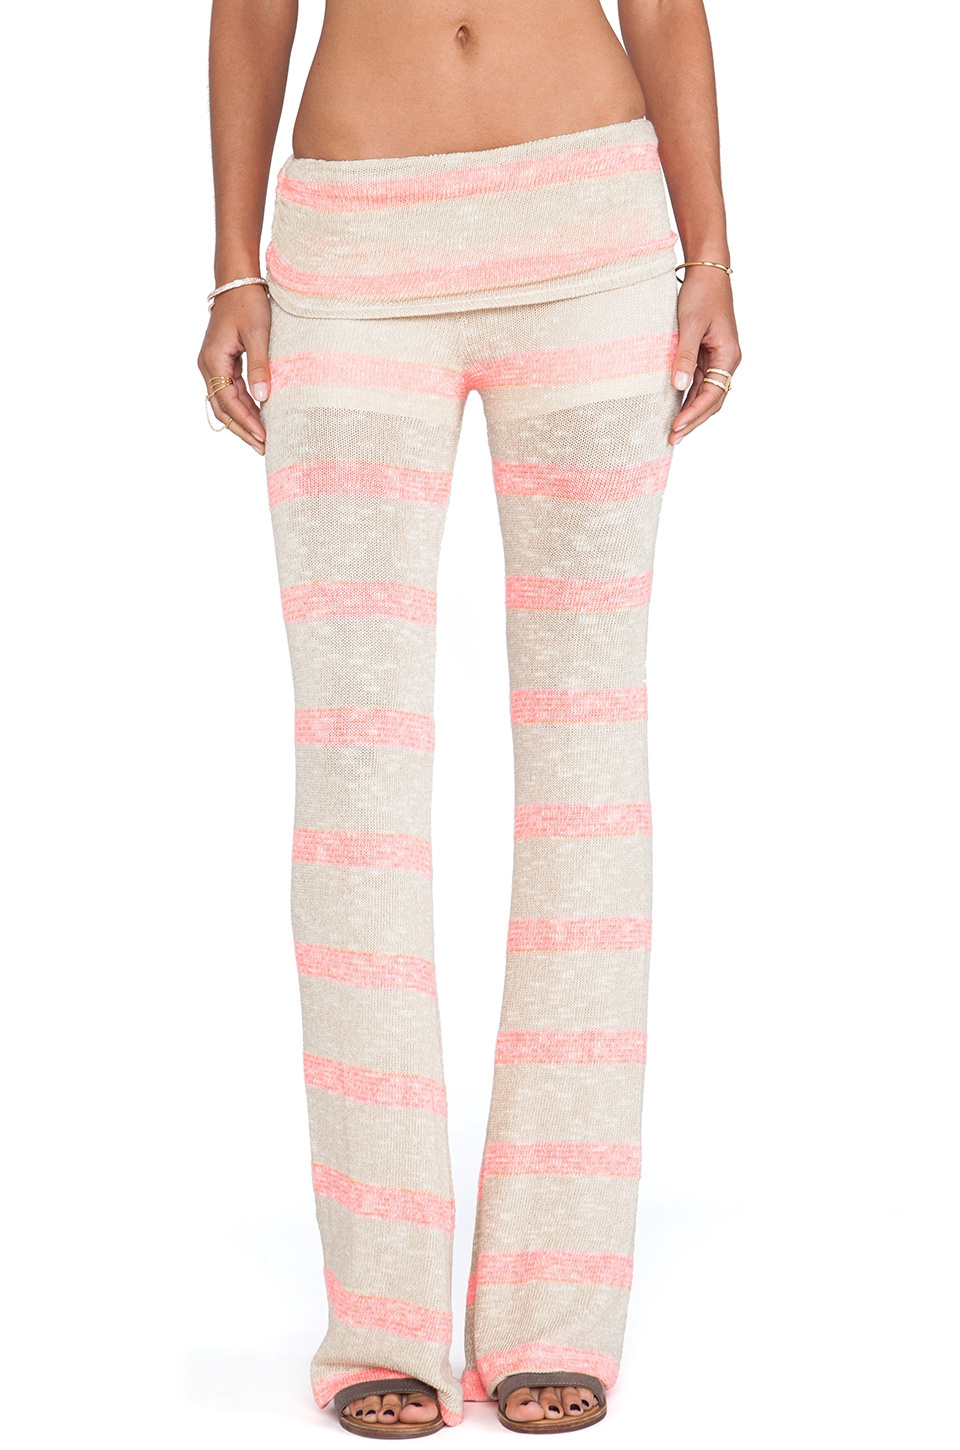 WOODLEIGH Fergie Fold Over Pant in Neon Coral